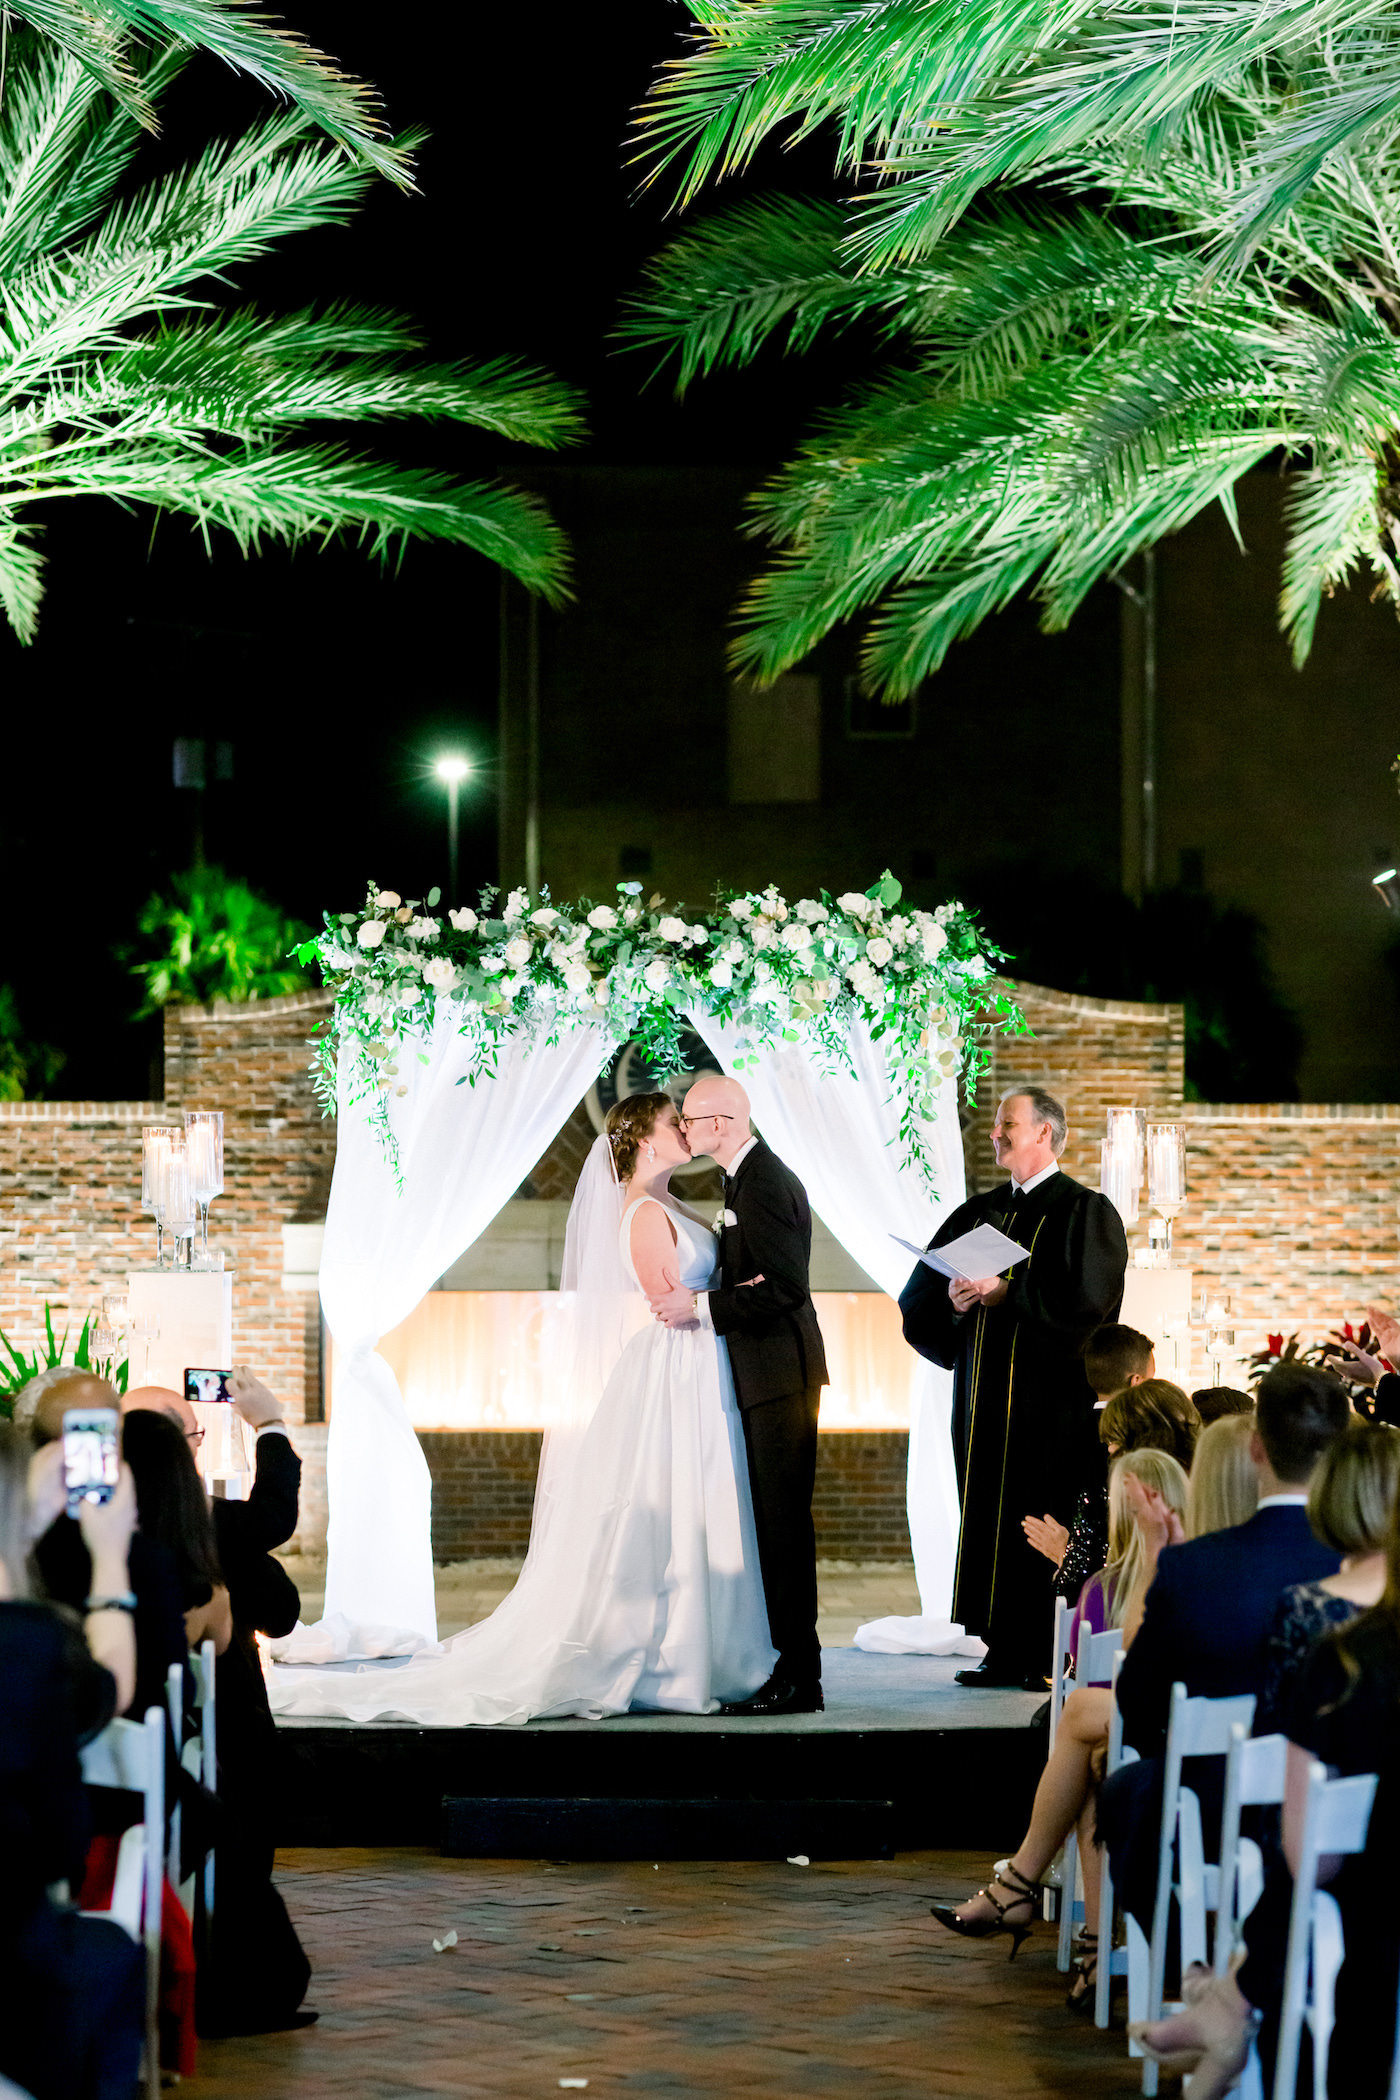 New Year's Eve Nighttime Classic Bride and Groom Wedding Ceremony Portrait in Courtyard at Tampa Agliano Park | Wedding Photographer Shauna and Jordon Photography | Wedding Planner UNIQUE Weddings + Events